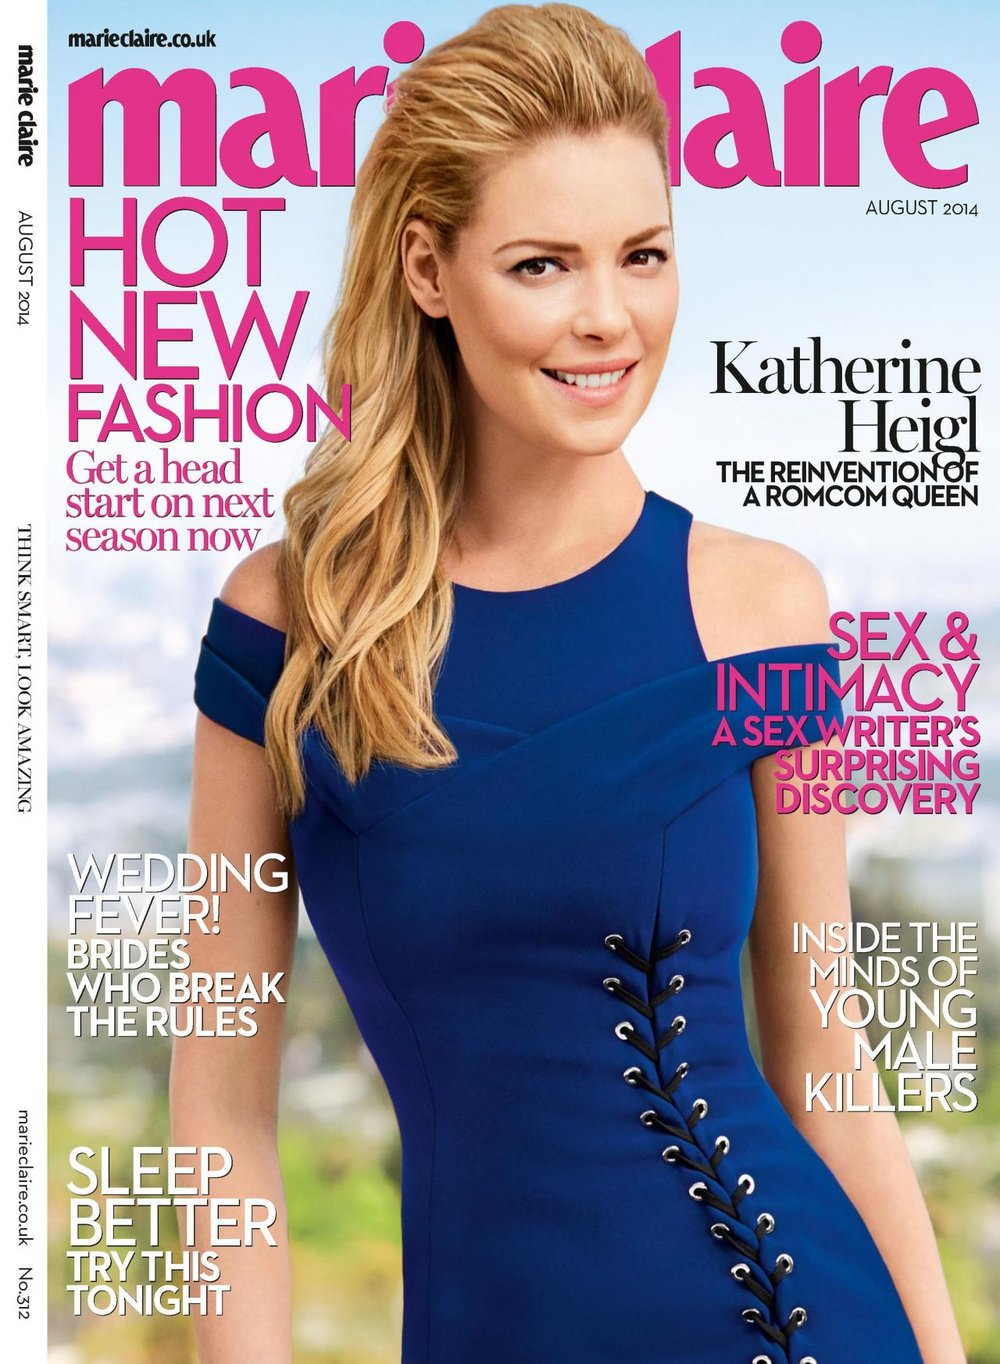 katherine-heigl-marie-claire-magazine-uk-august-2014-cover_2.jpg